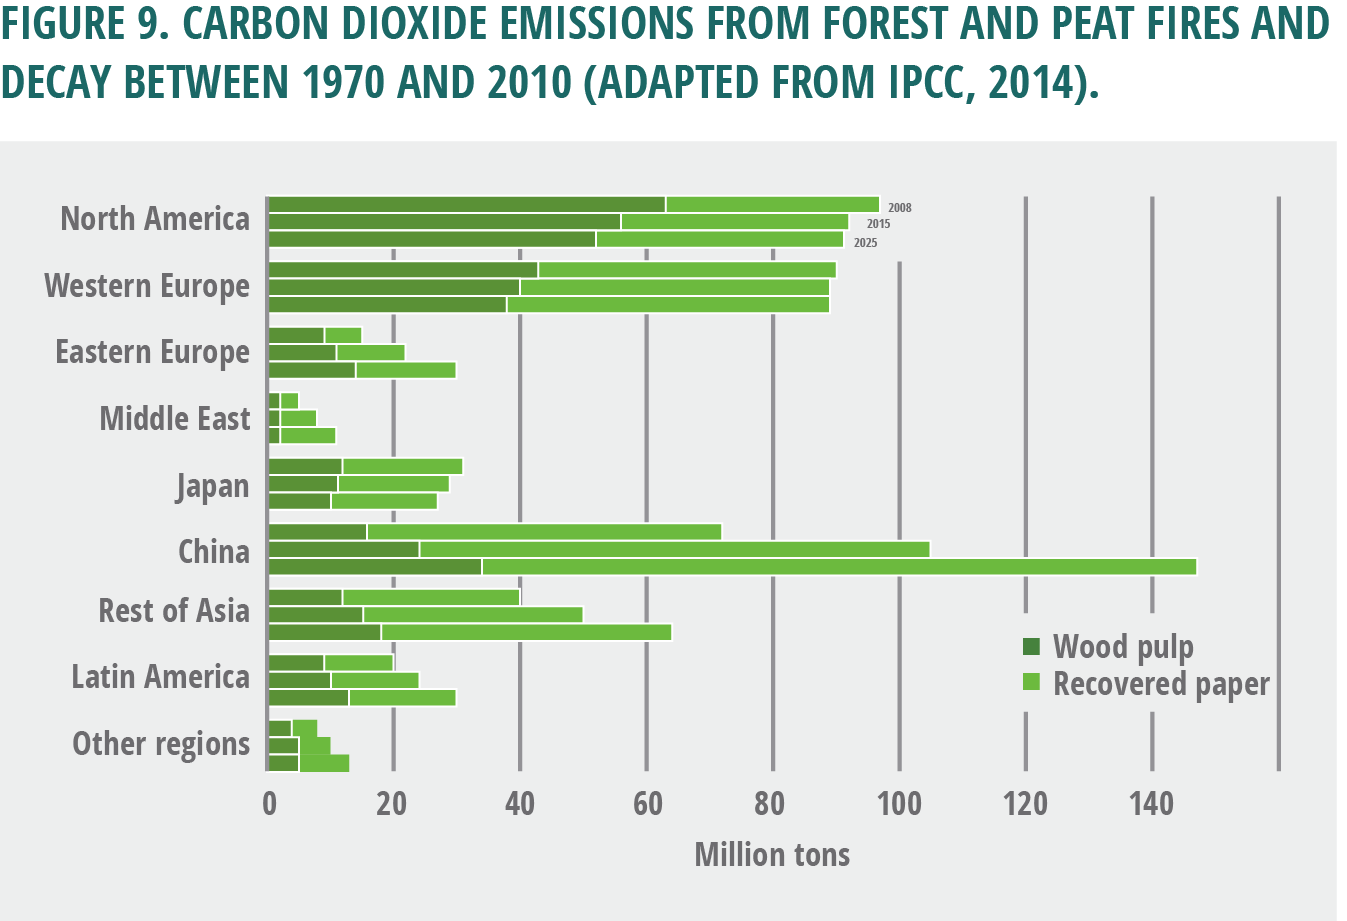 Figure 9. Carbon dioxide emissions from forest and peat fires and decay between 1970 and 2010 (adapted from IPCC, 2014).